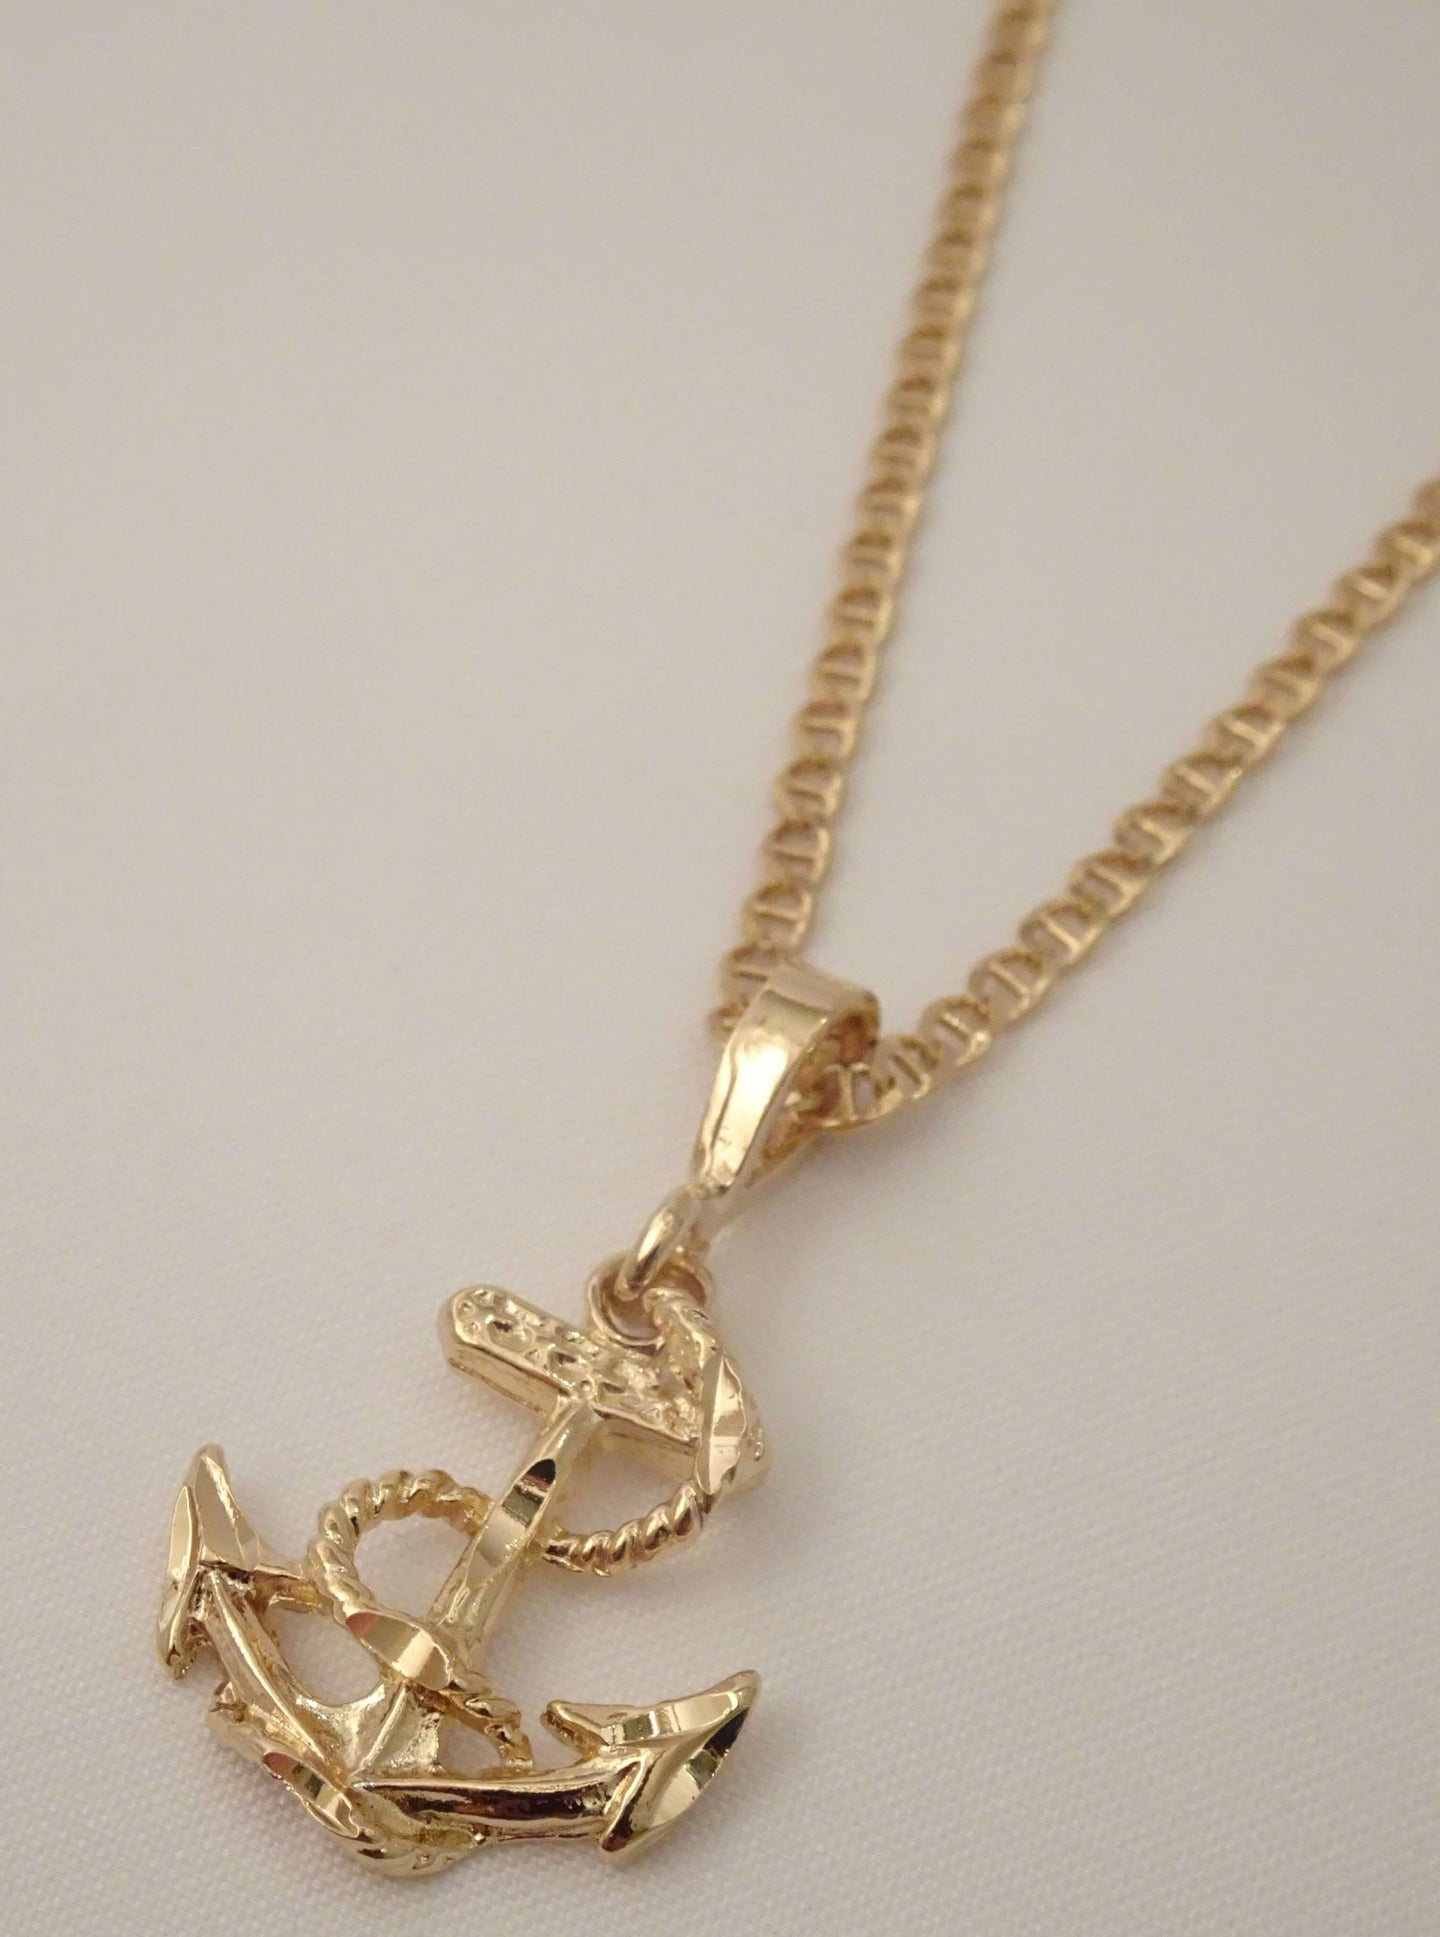 anchor necklace, mens anchor necklace, gold anchor necklace, womens anchor necklace, gold anchor pendant, anchor jewelry, nautical jewelry, biker jewelry, american jewelry, ocean jewelry